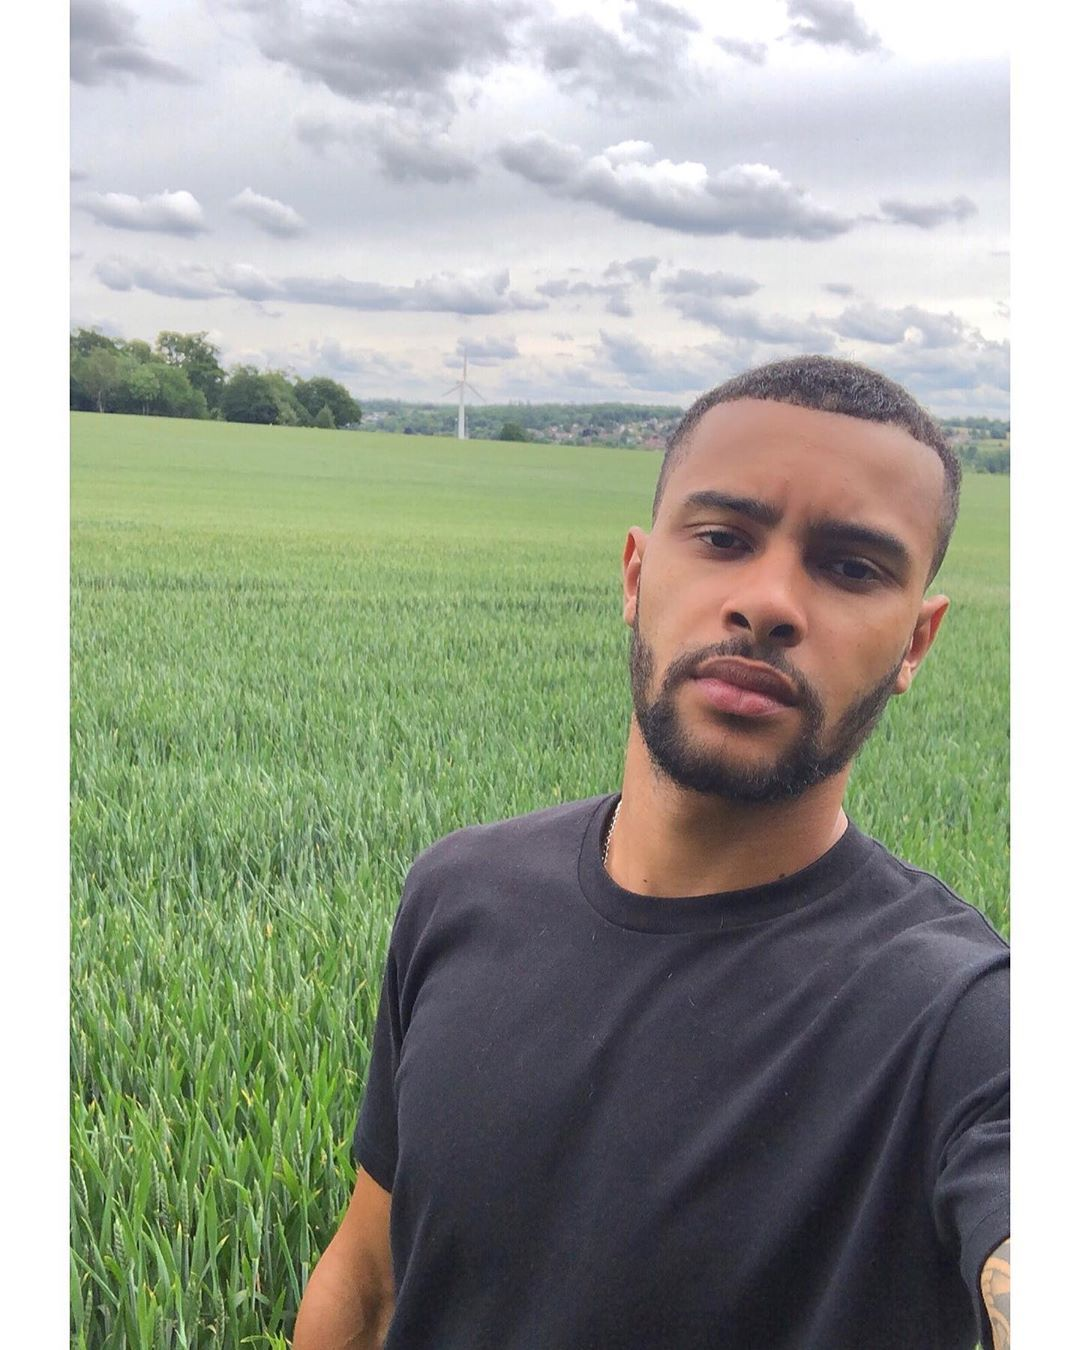 Image may contain: Casa Amor Islanders, Casa Amor, Love Island, Dennon Lewis, Islander, cast, contestant, new, Instagram, rumours, gossip, lineup, latest, date, Land, Paddy Field, Beard, Man, Vegetation, Countryside, Grass, Plant, Grassland, Field, Outdoors, Nature, Face, Person, Human